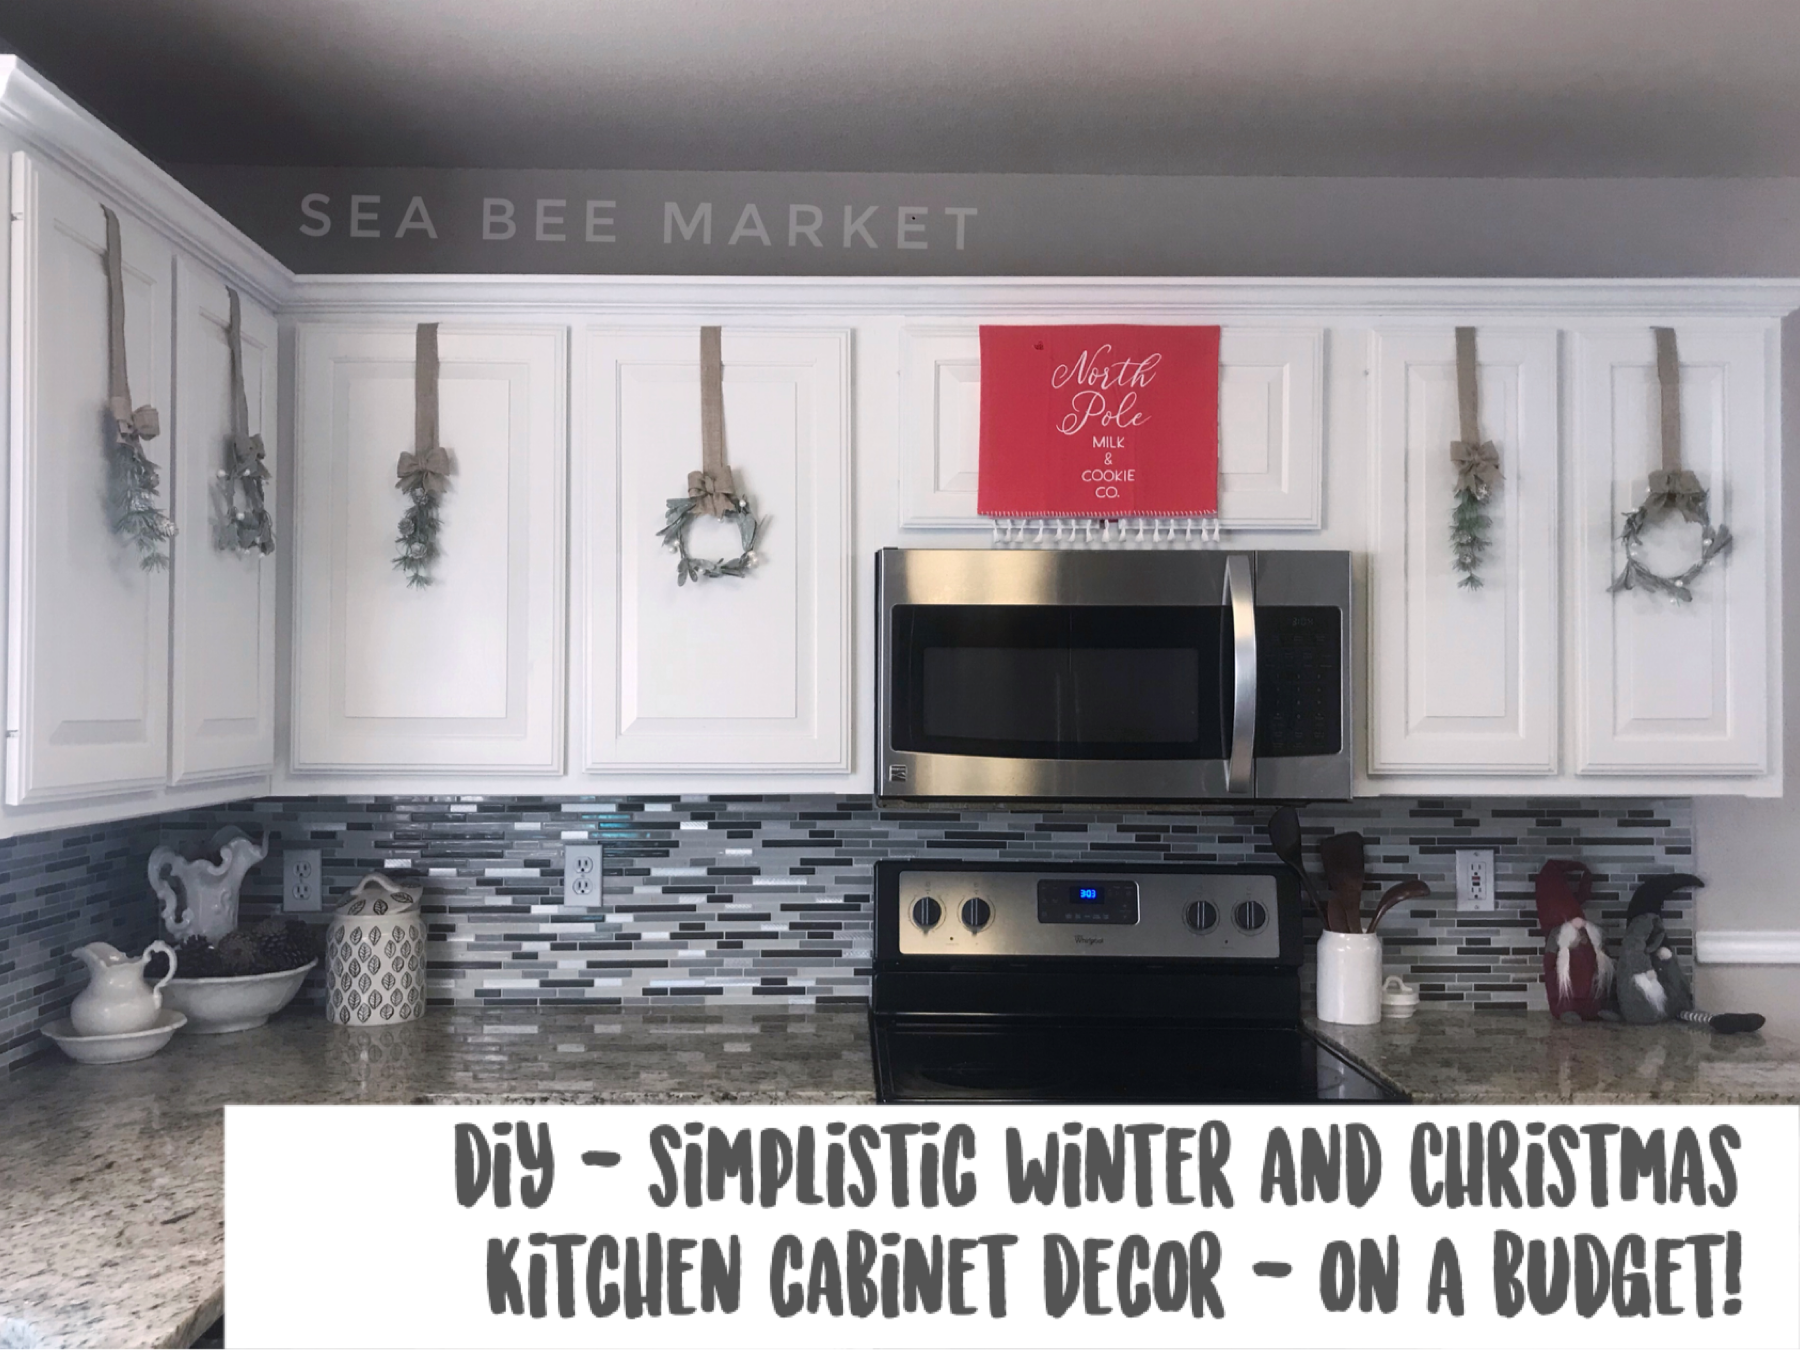 Diy Christmas Winter Kitchen Cabinet Decor Sea Bee Market